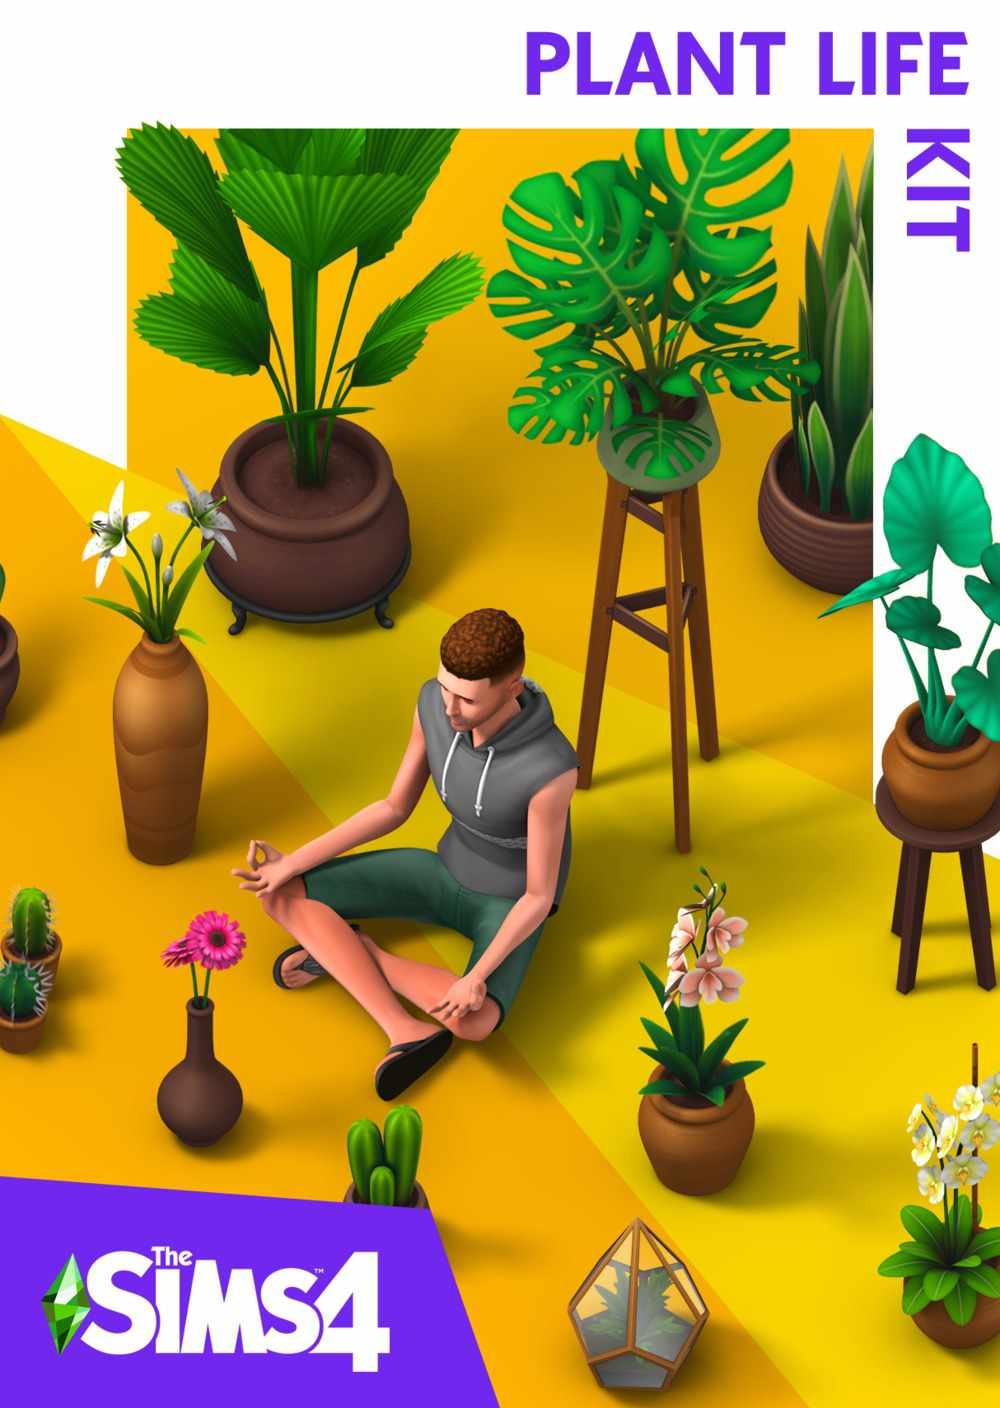 The Sims 4 Plant Life Kit